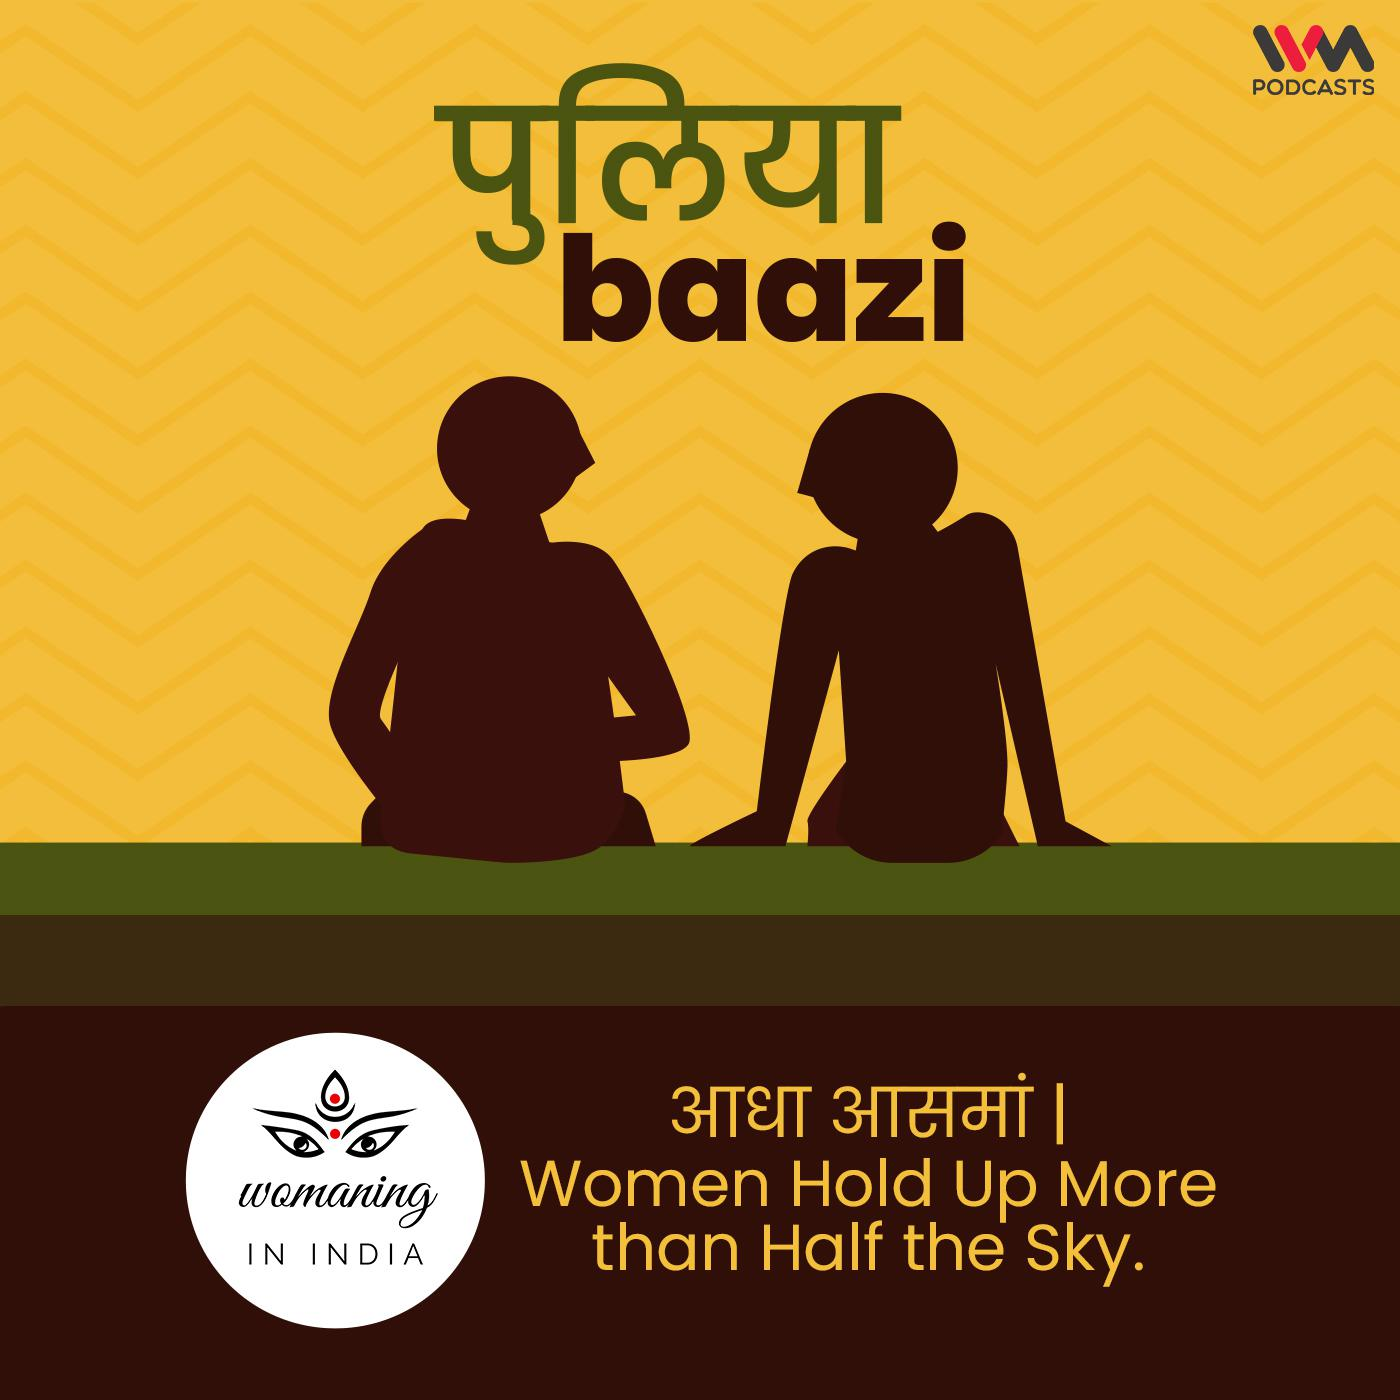 आधा आसमां. Women Hold Up More than Half the Sky.